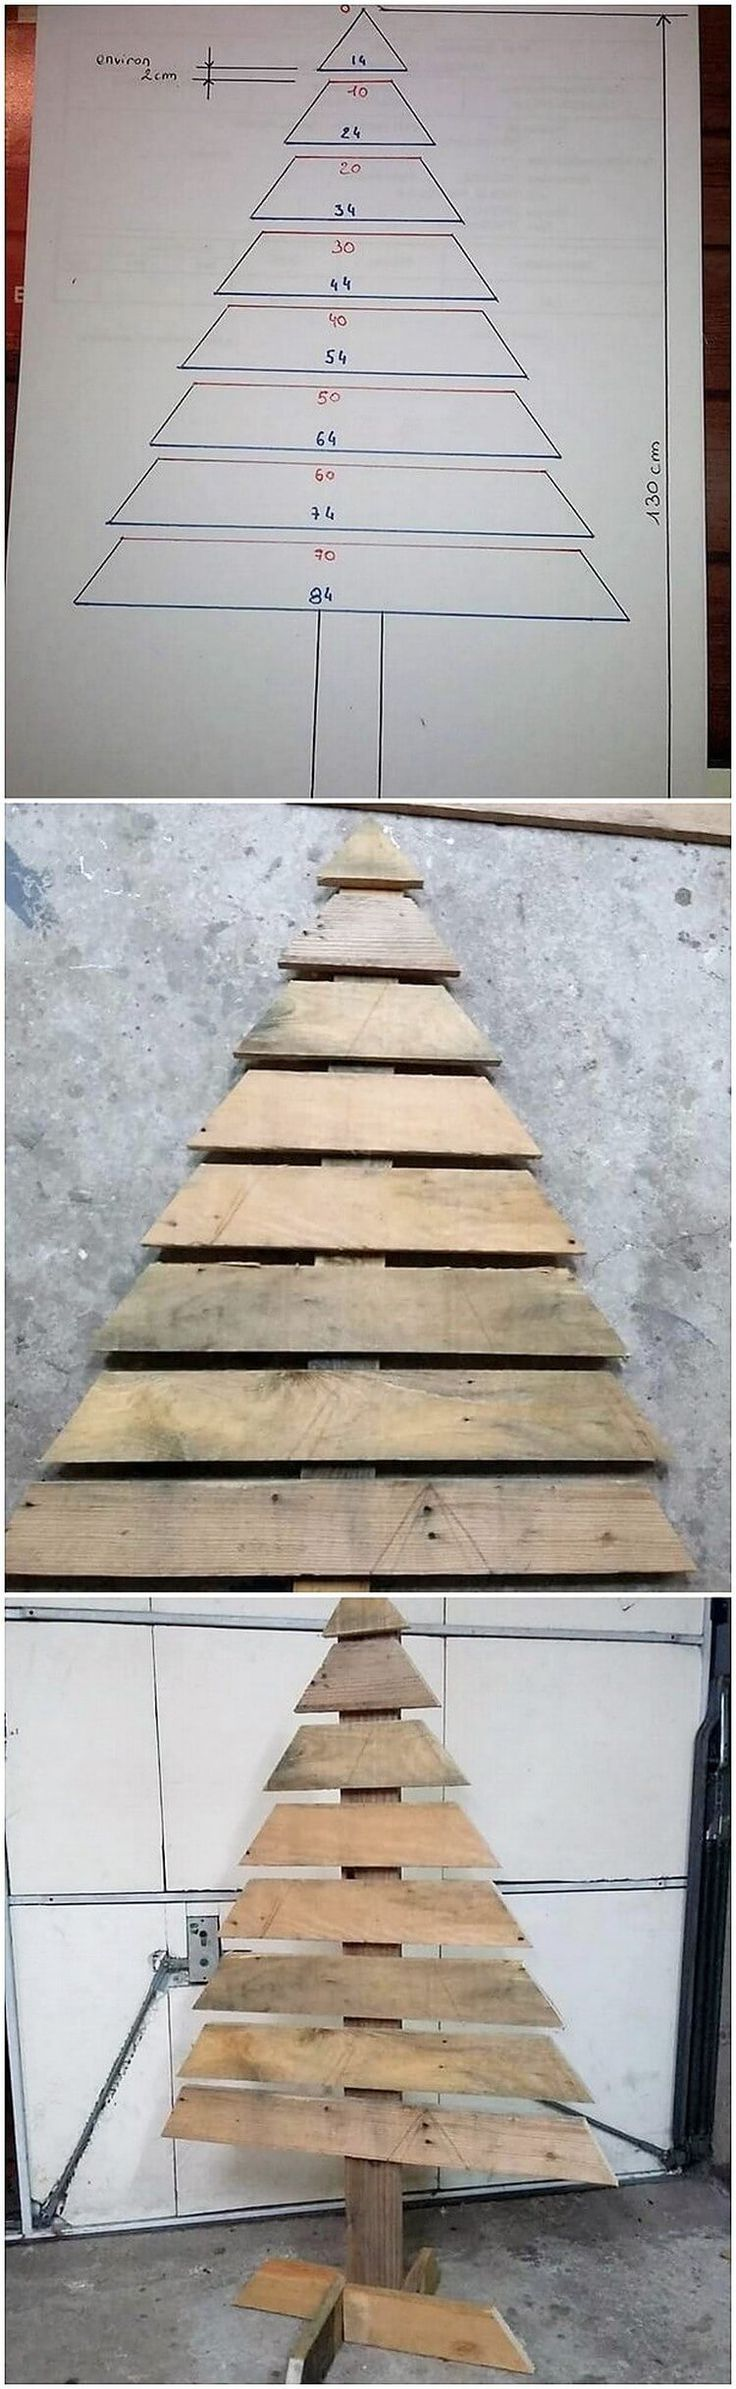 It would give such a impressive appearance by putting together the arrangement of the wood pallet for the ideal Christmas tree creation outside the home gate. It will appear so classy and modish too as you can make its favorable use for the house decoration purposes.